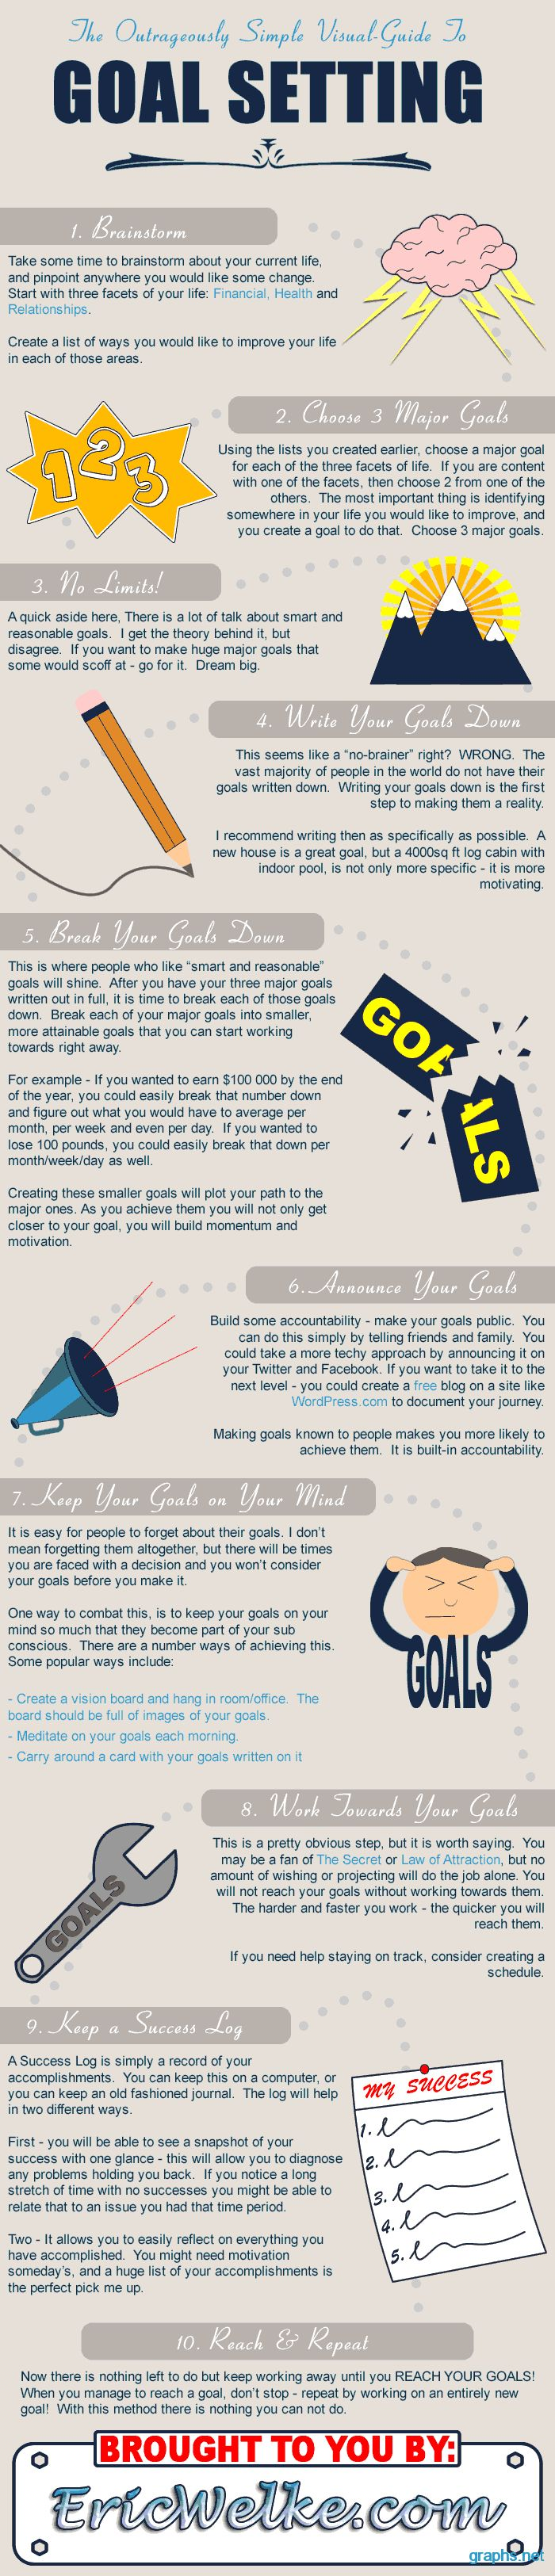 Setting goals is an important task for leaders. Here's a guide to goal setting.